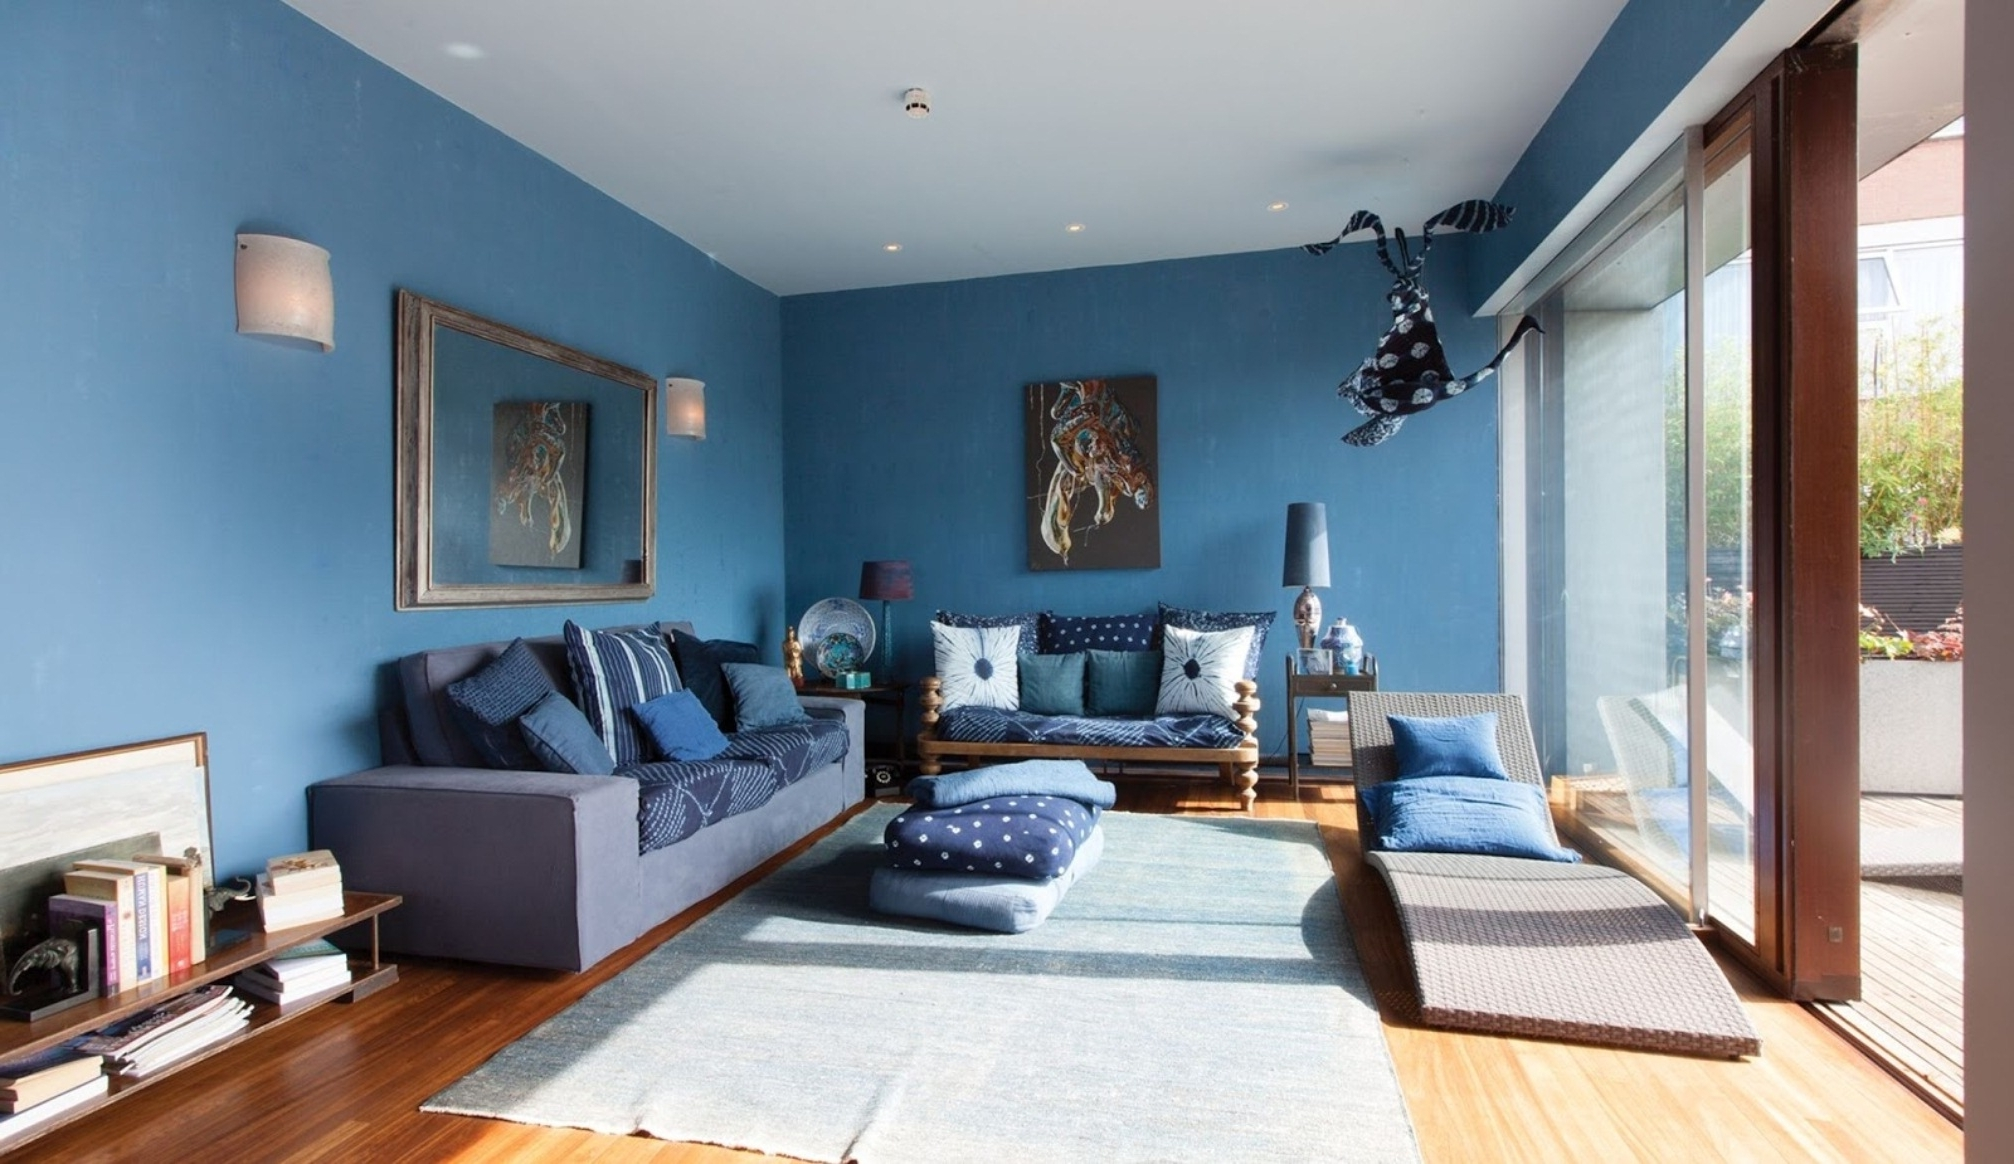 Blue Wall Accents With Regard To Latest Light Blue Accent Wall Accent Wall Ideas For Living Room Wall (View 5 of 15)